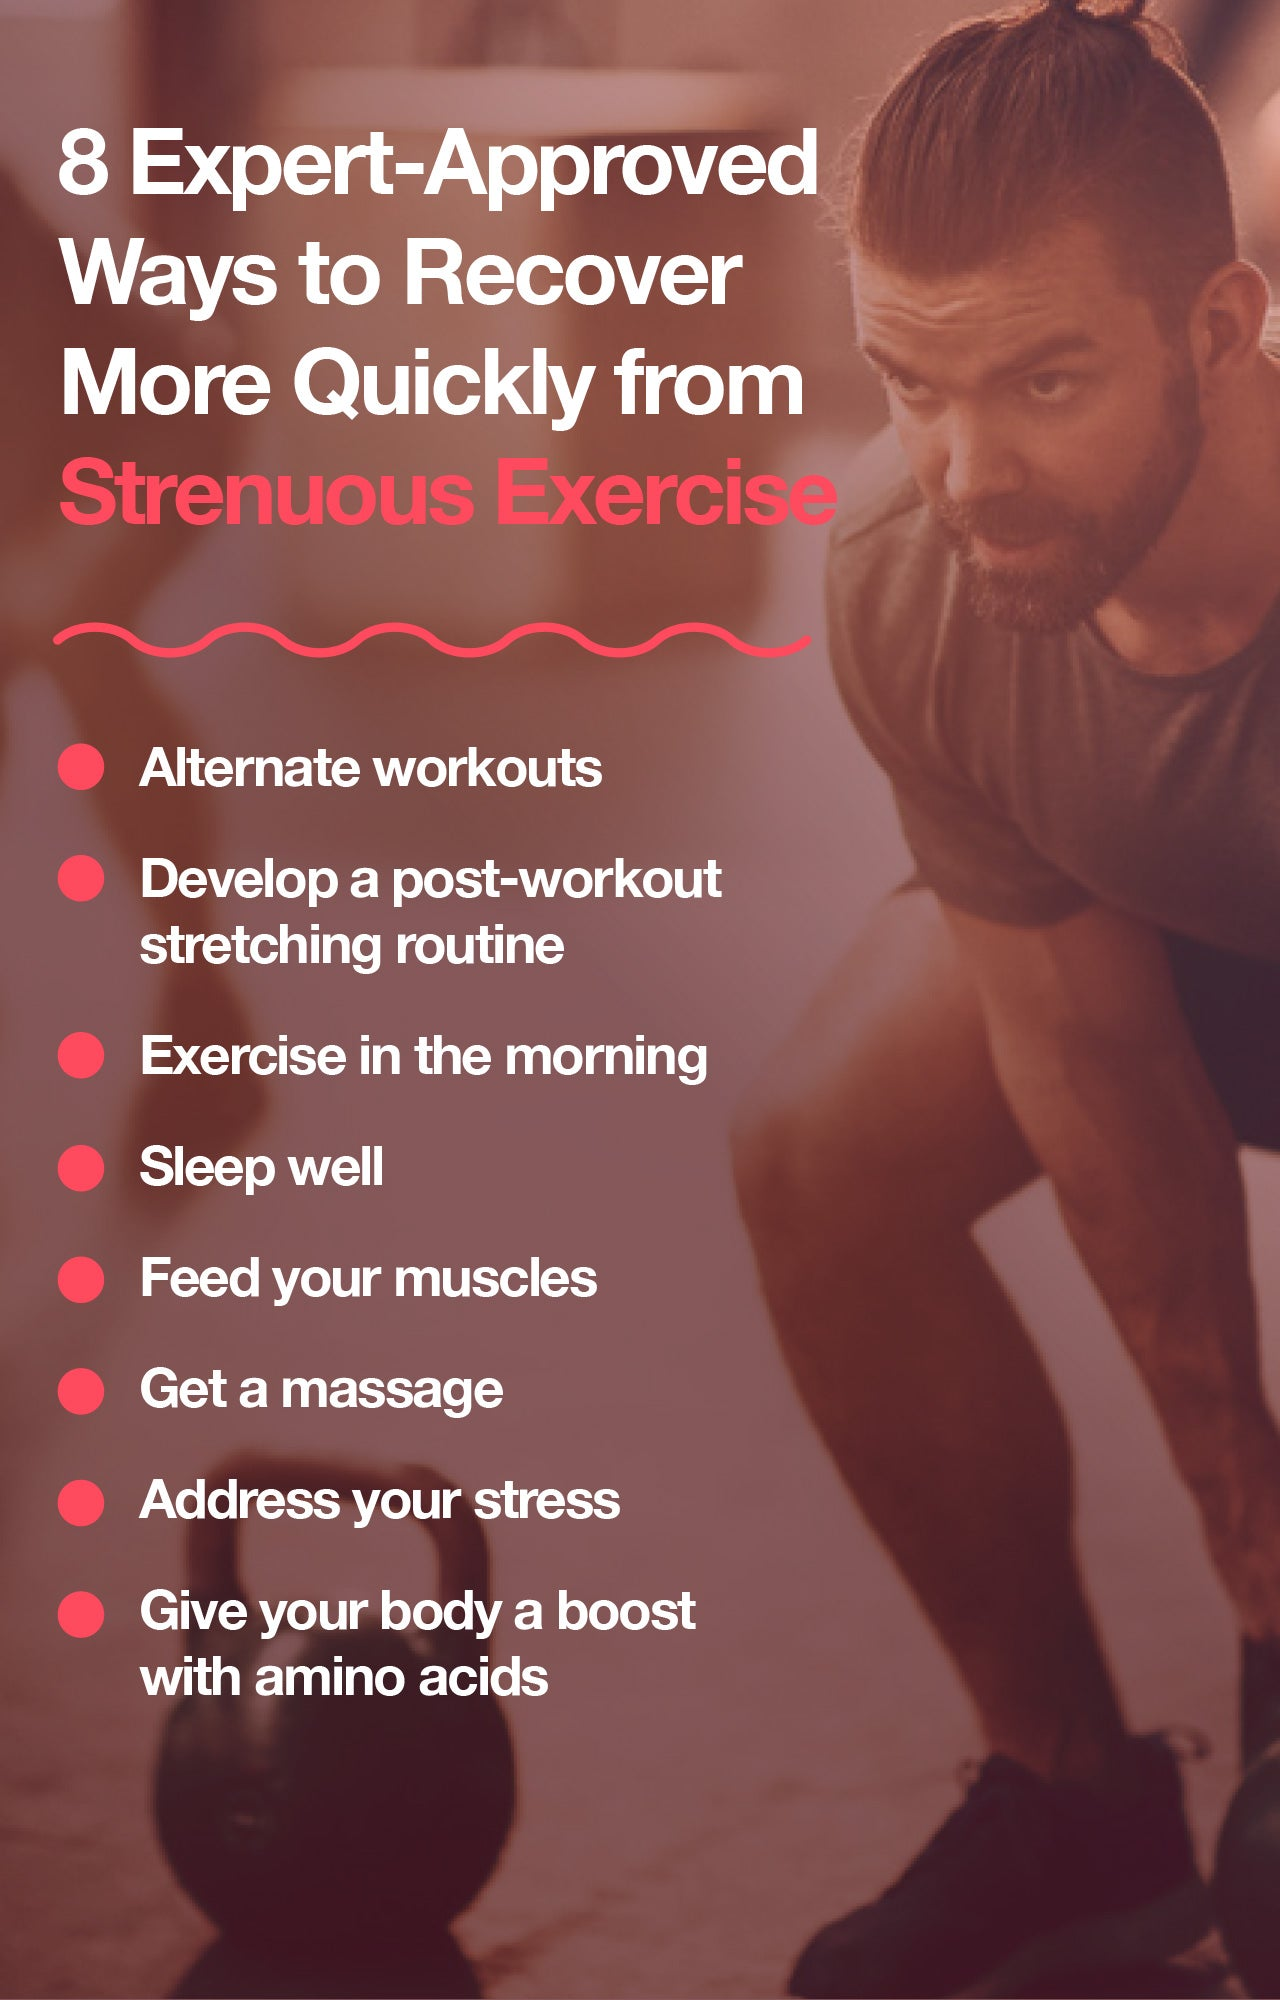 How to recover faster from workouts